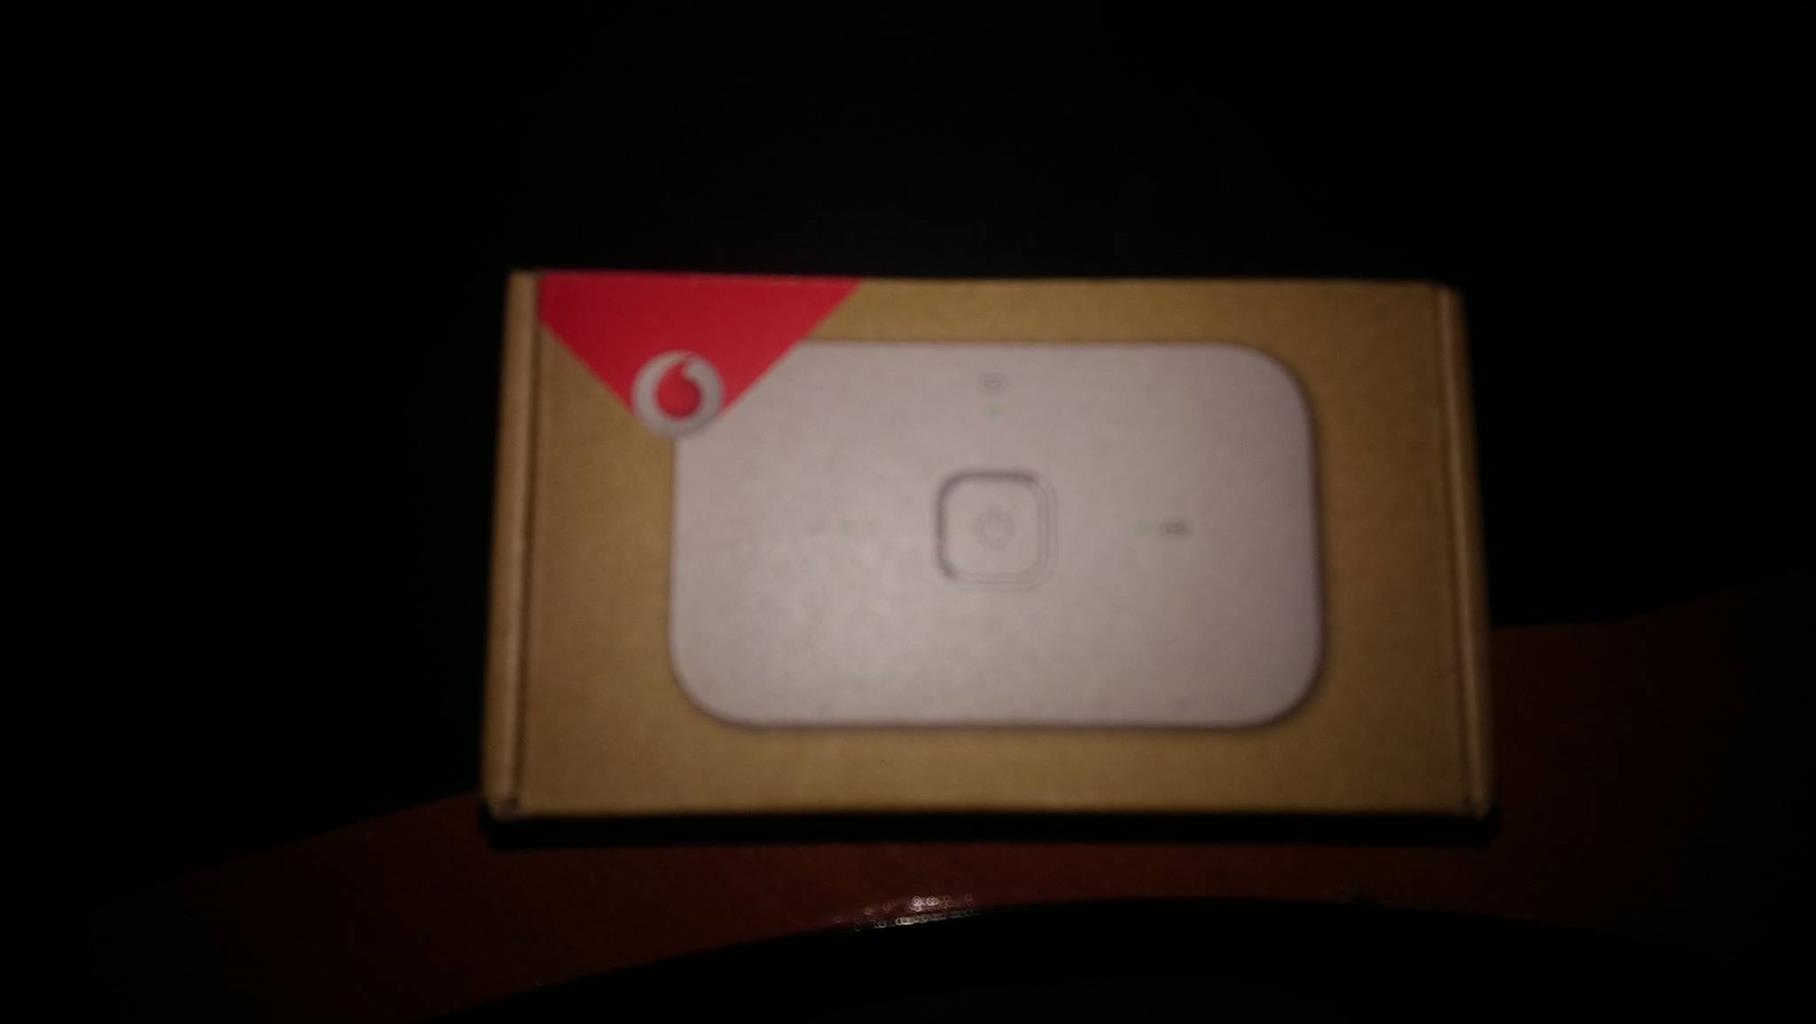 HUAWEI VODAFONE R218H 4G LTE MOBILE WIFI ROUTER (NUUT)